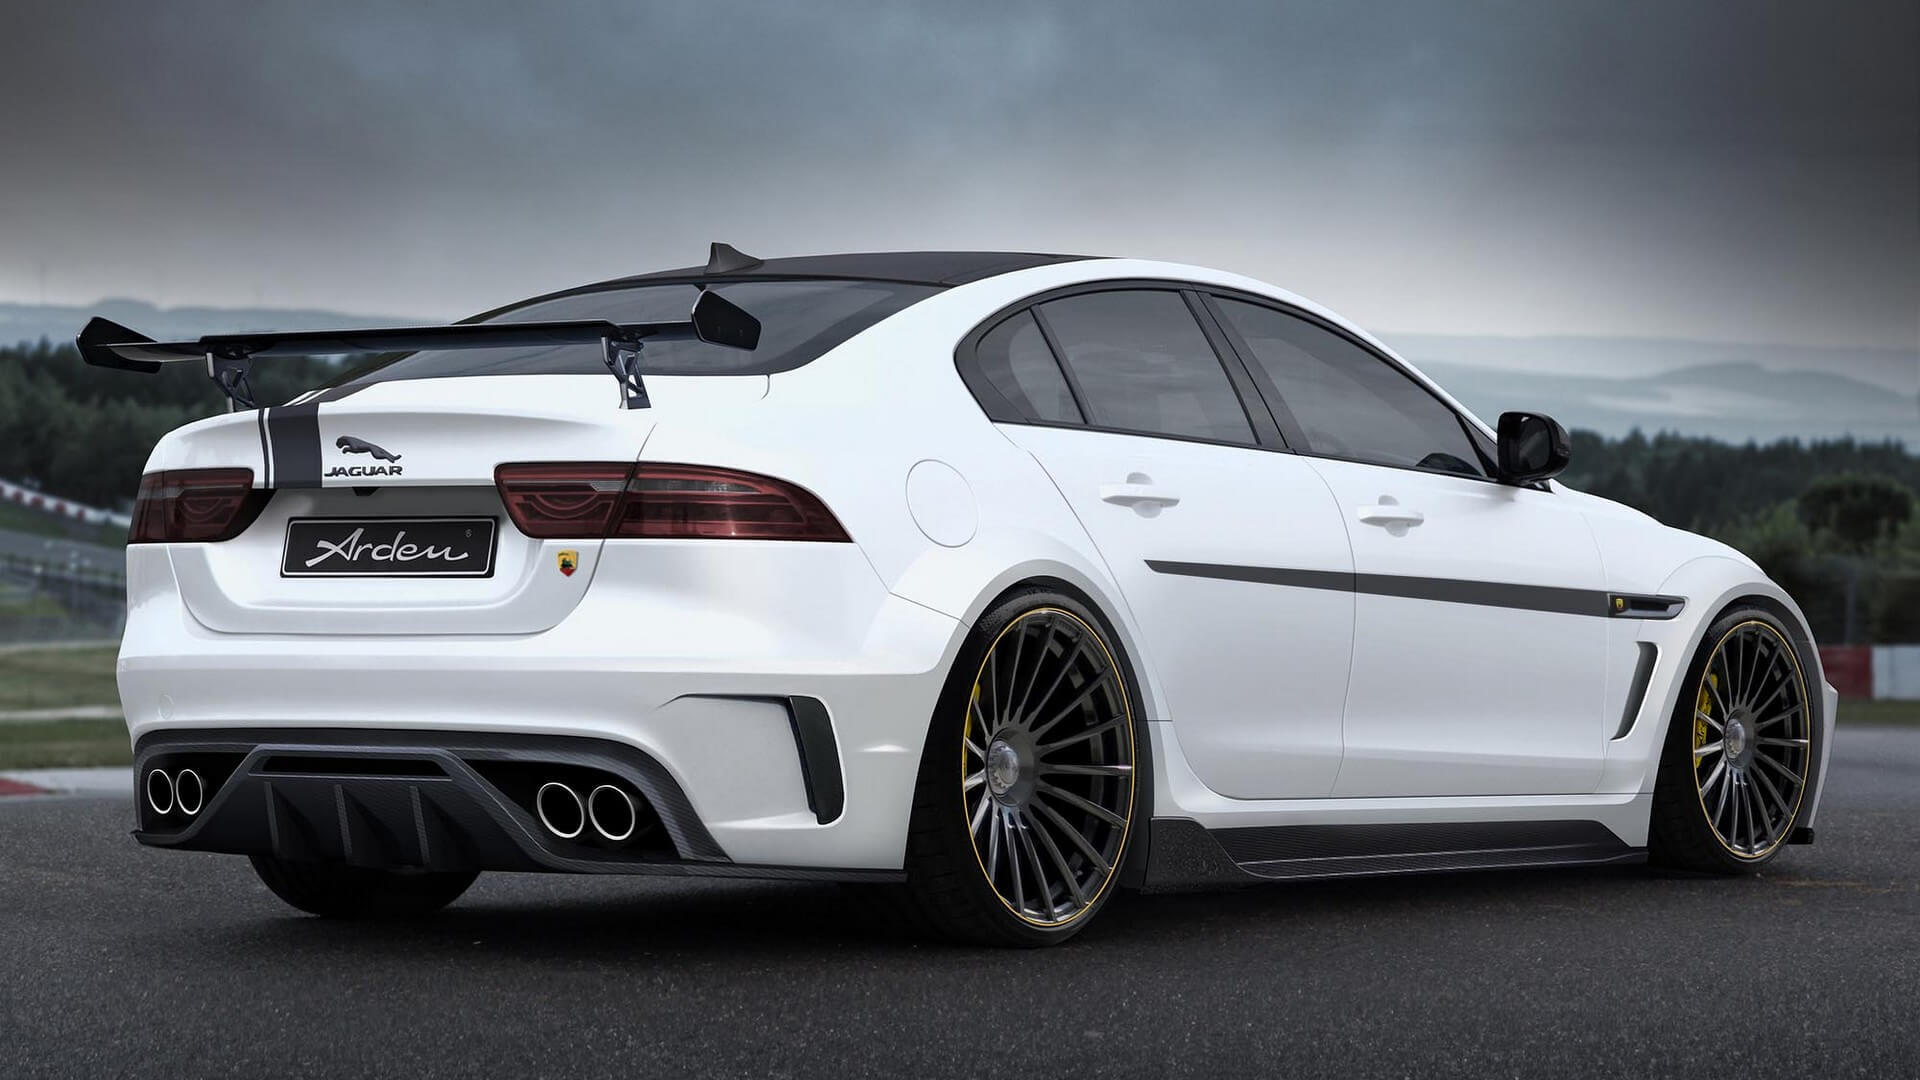 463-HP Jaguar XE By Arden Is The Closest Thing To An XE SVR